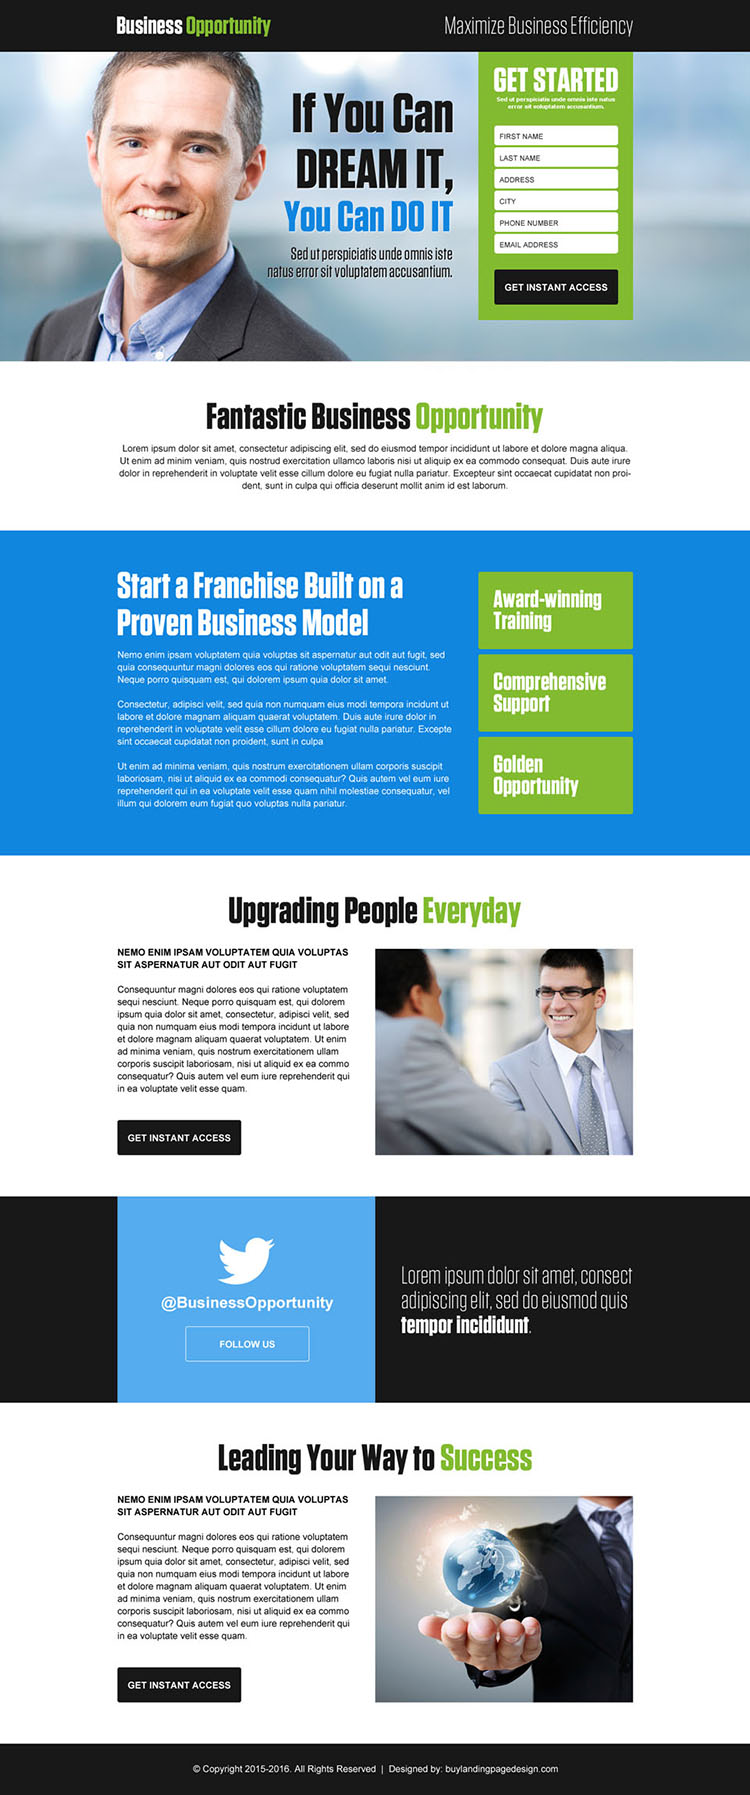 fantastic business opportunity lead generating landing page design